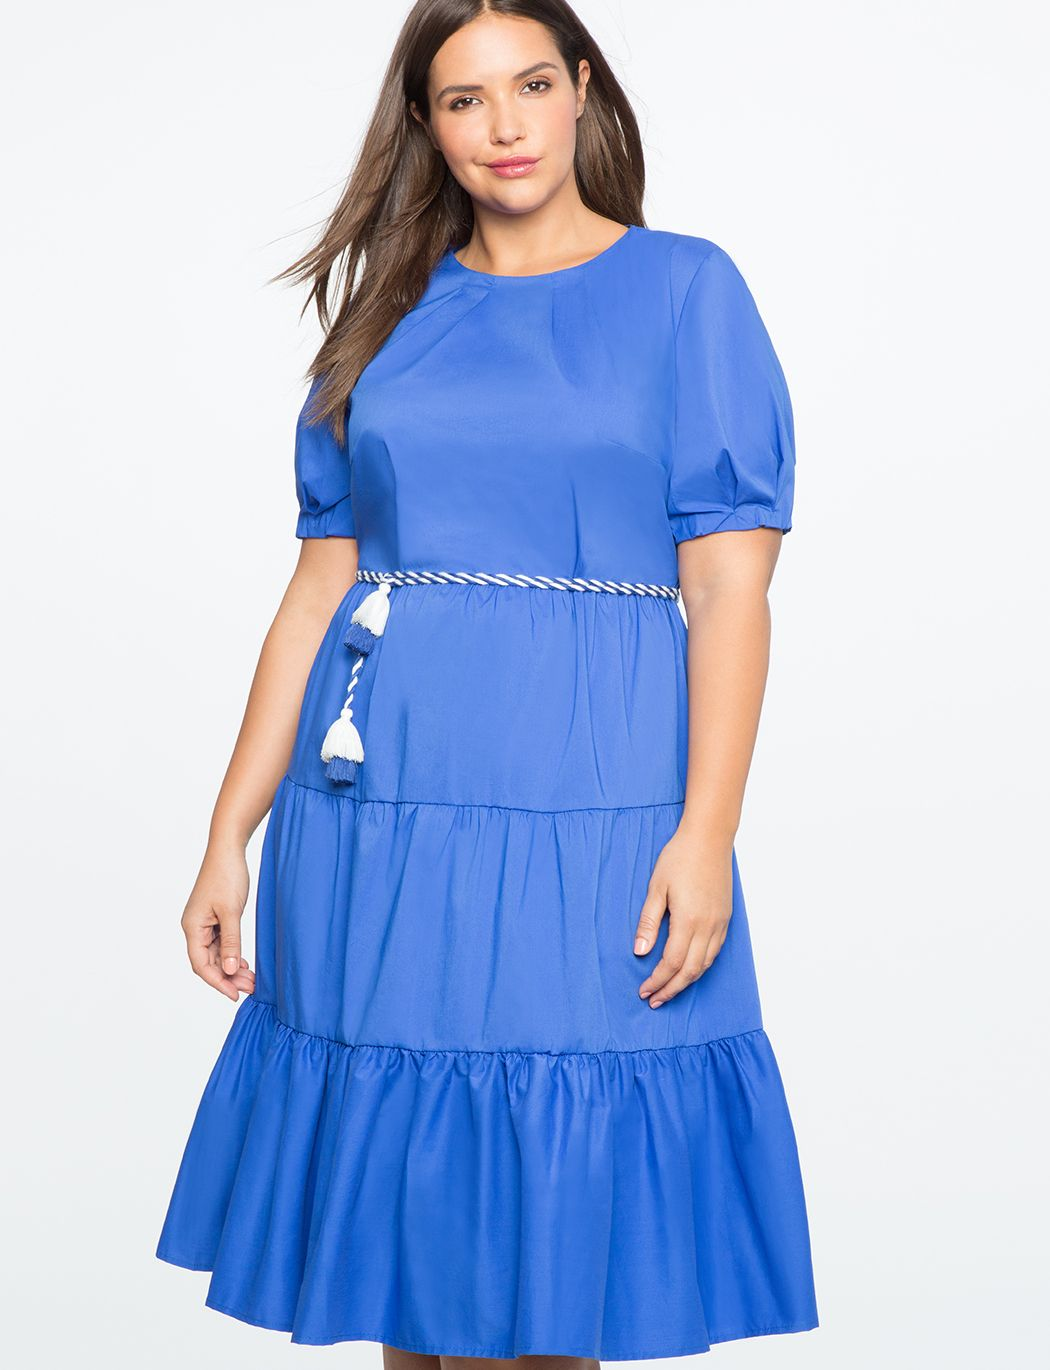 Tiered puff sleeve dress with rope belt surf the web for plus size